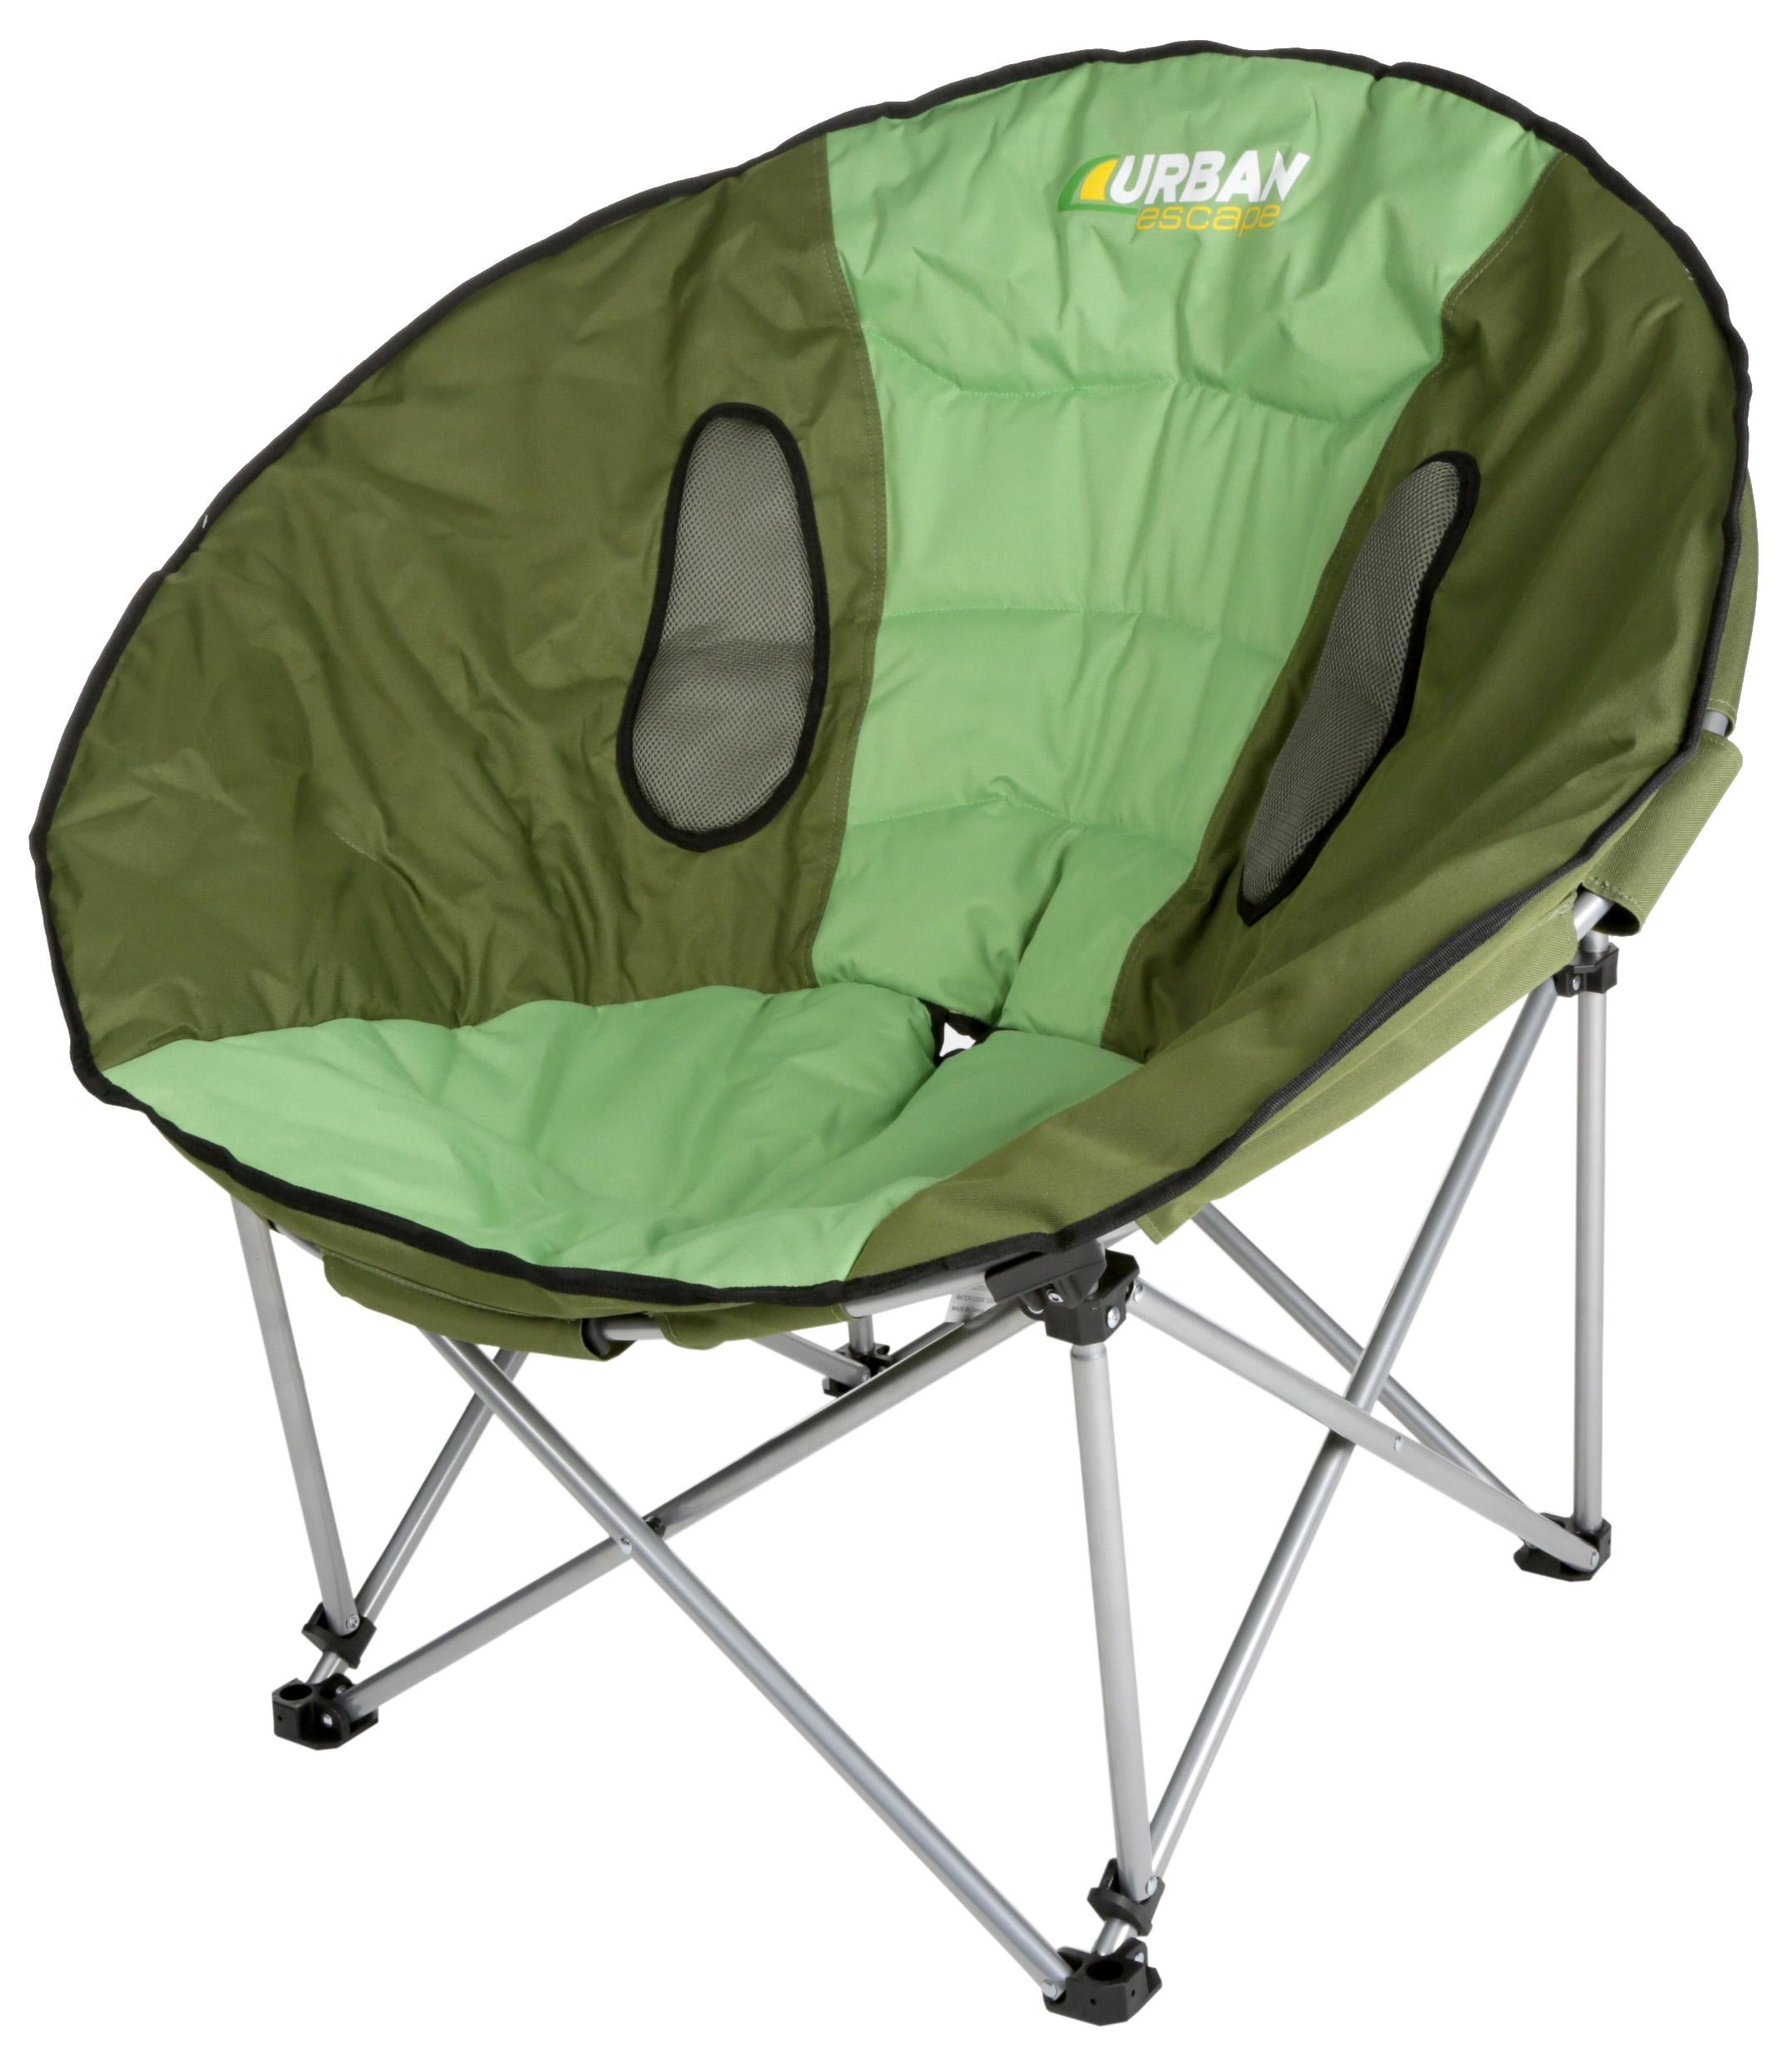 Urban Escape Moon Chair Green Steel Tube Foldable Comfort Camping ...